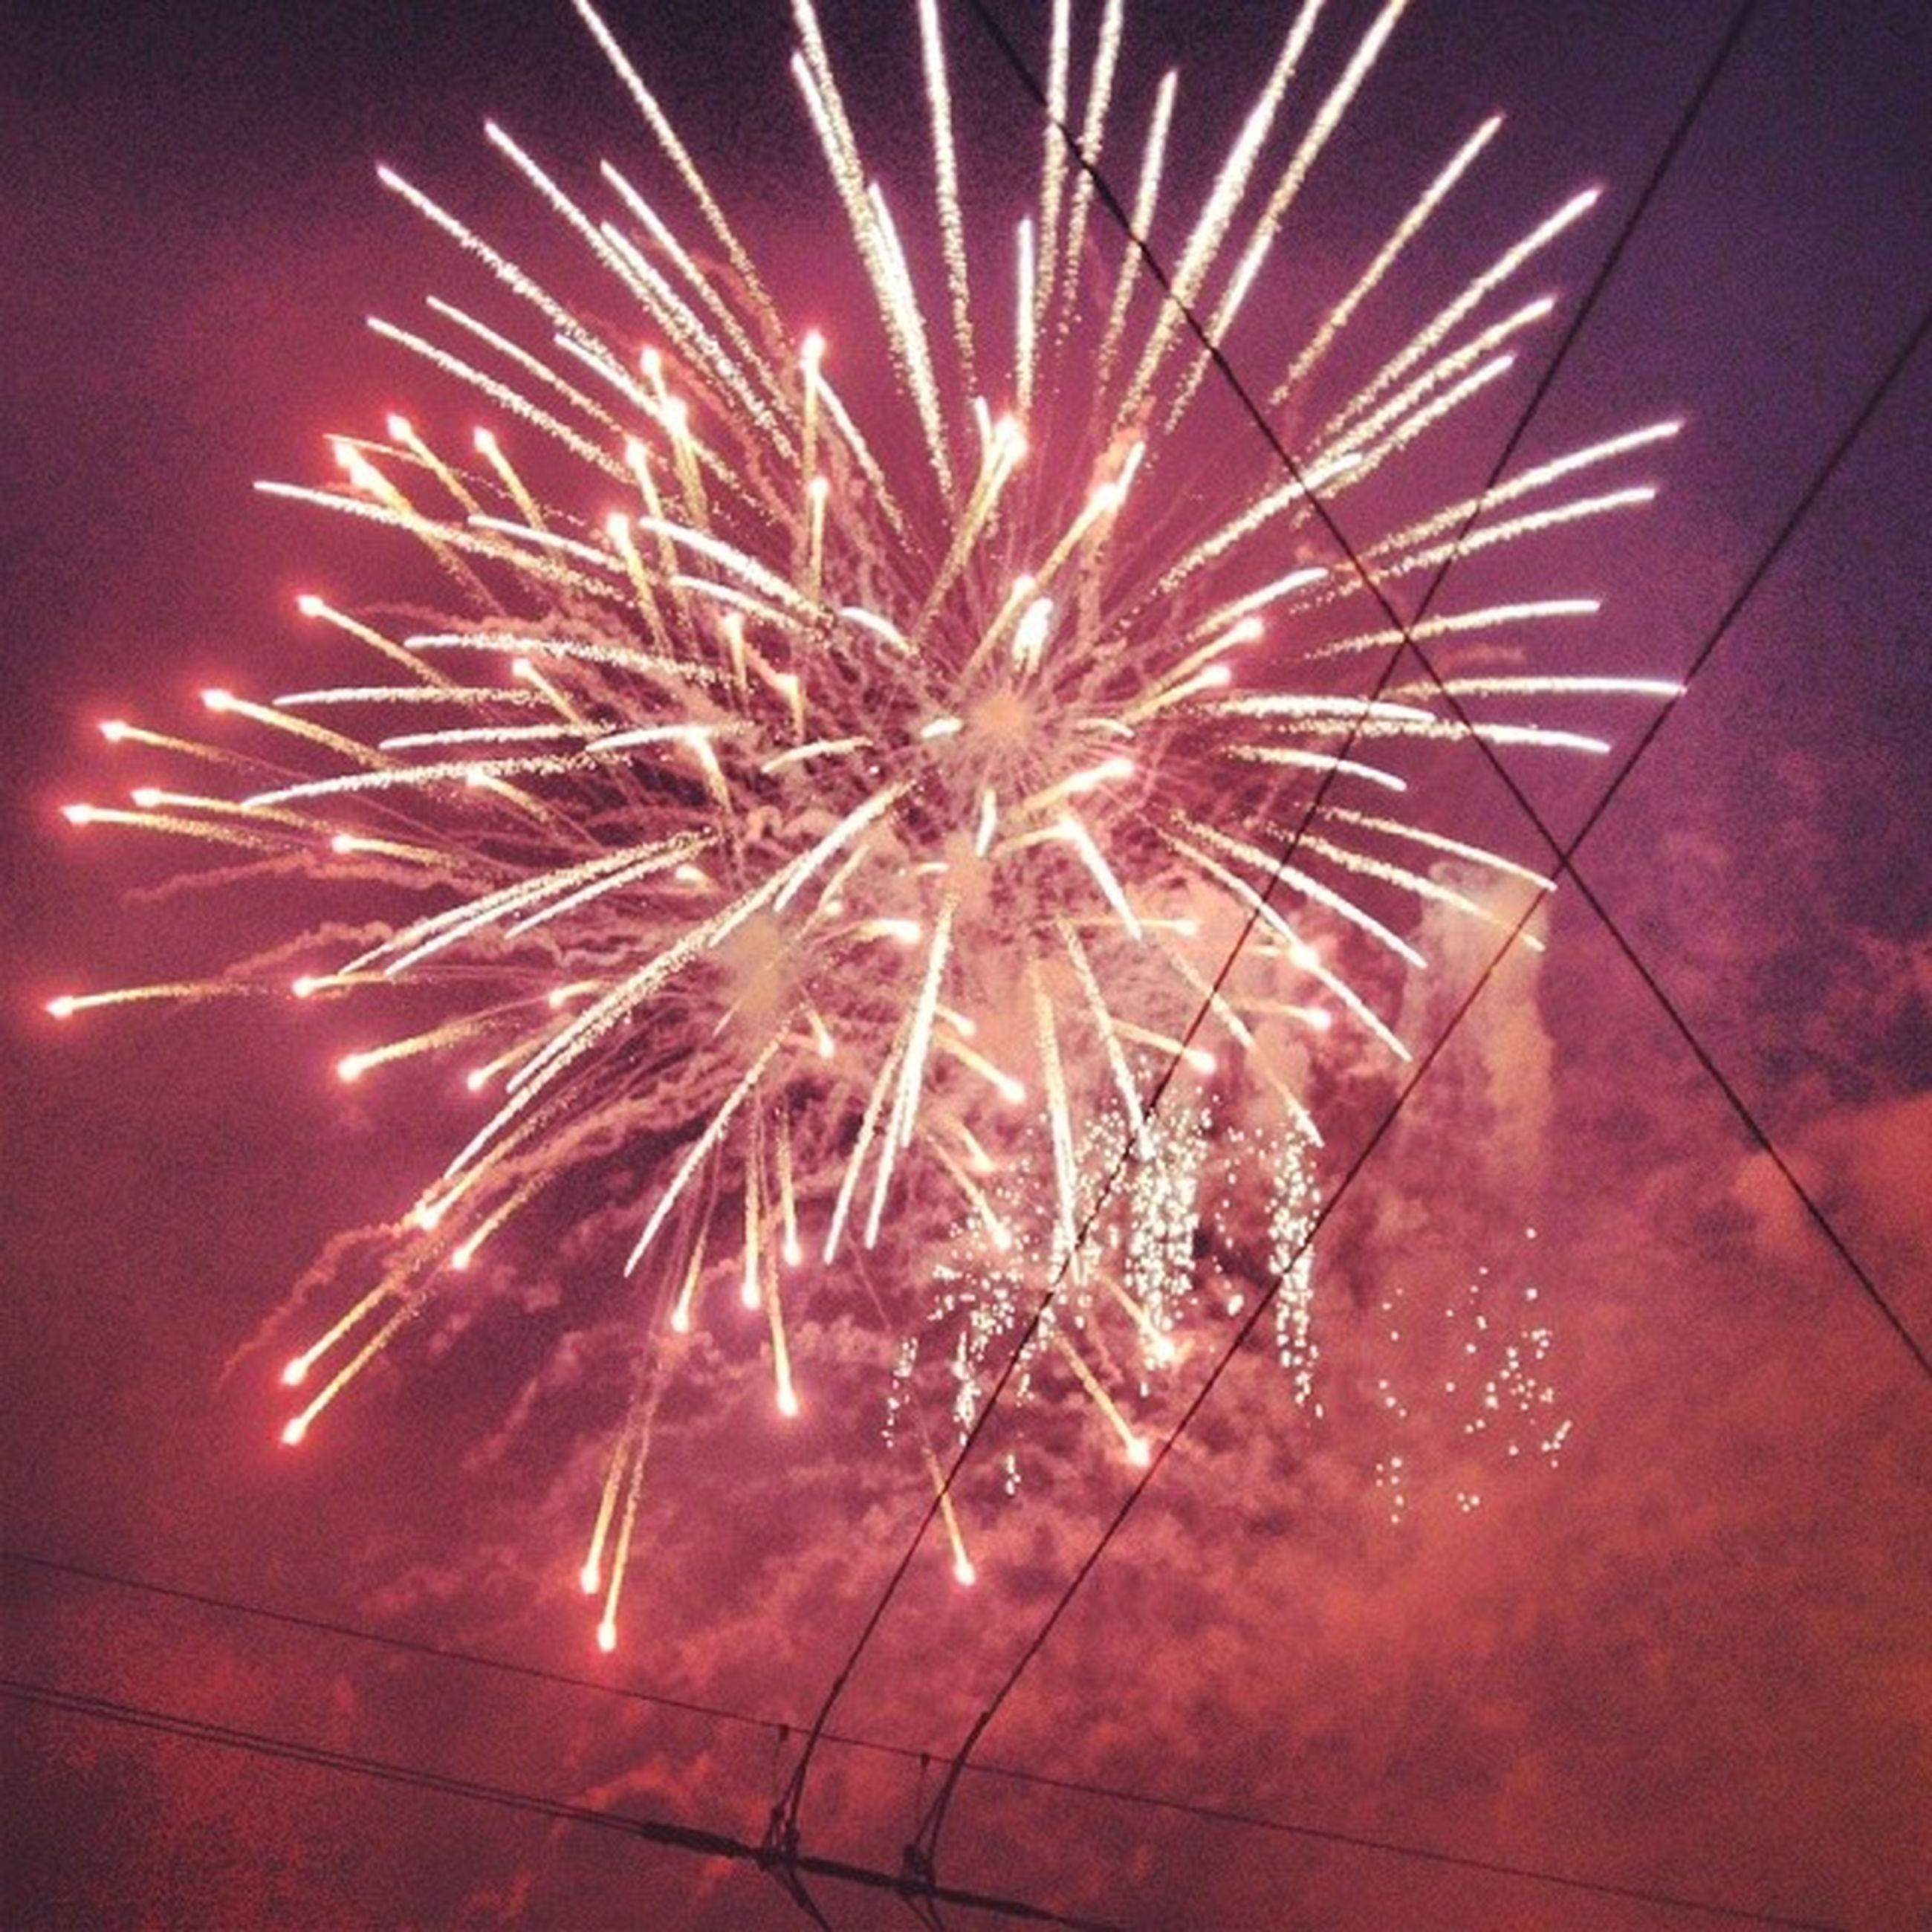 night, illuminated, firework display, celebration, exploding, arts culture and entertainment, motion, sparks, firework - man made object, low angle view, event, long exposure, glowing, sky, firework, blurred motion, entertainment, celebration event, red, outdoors